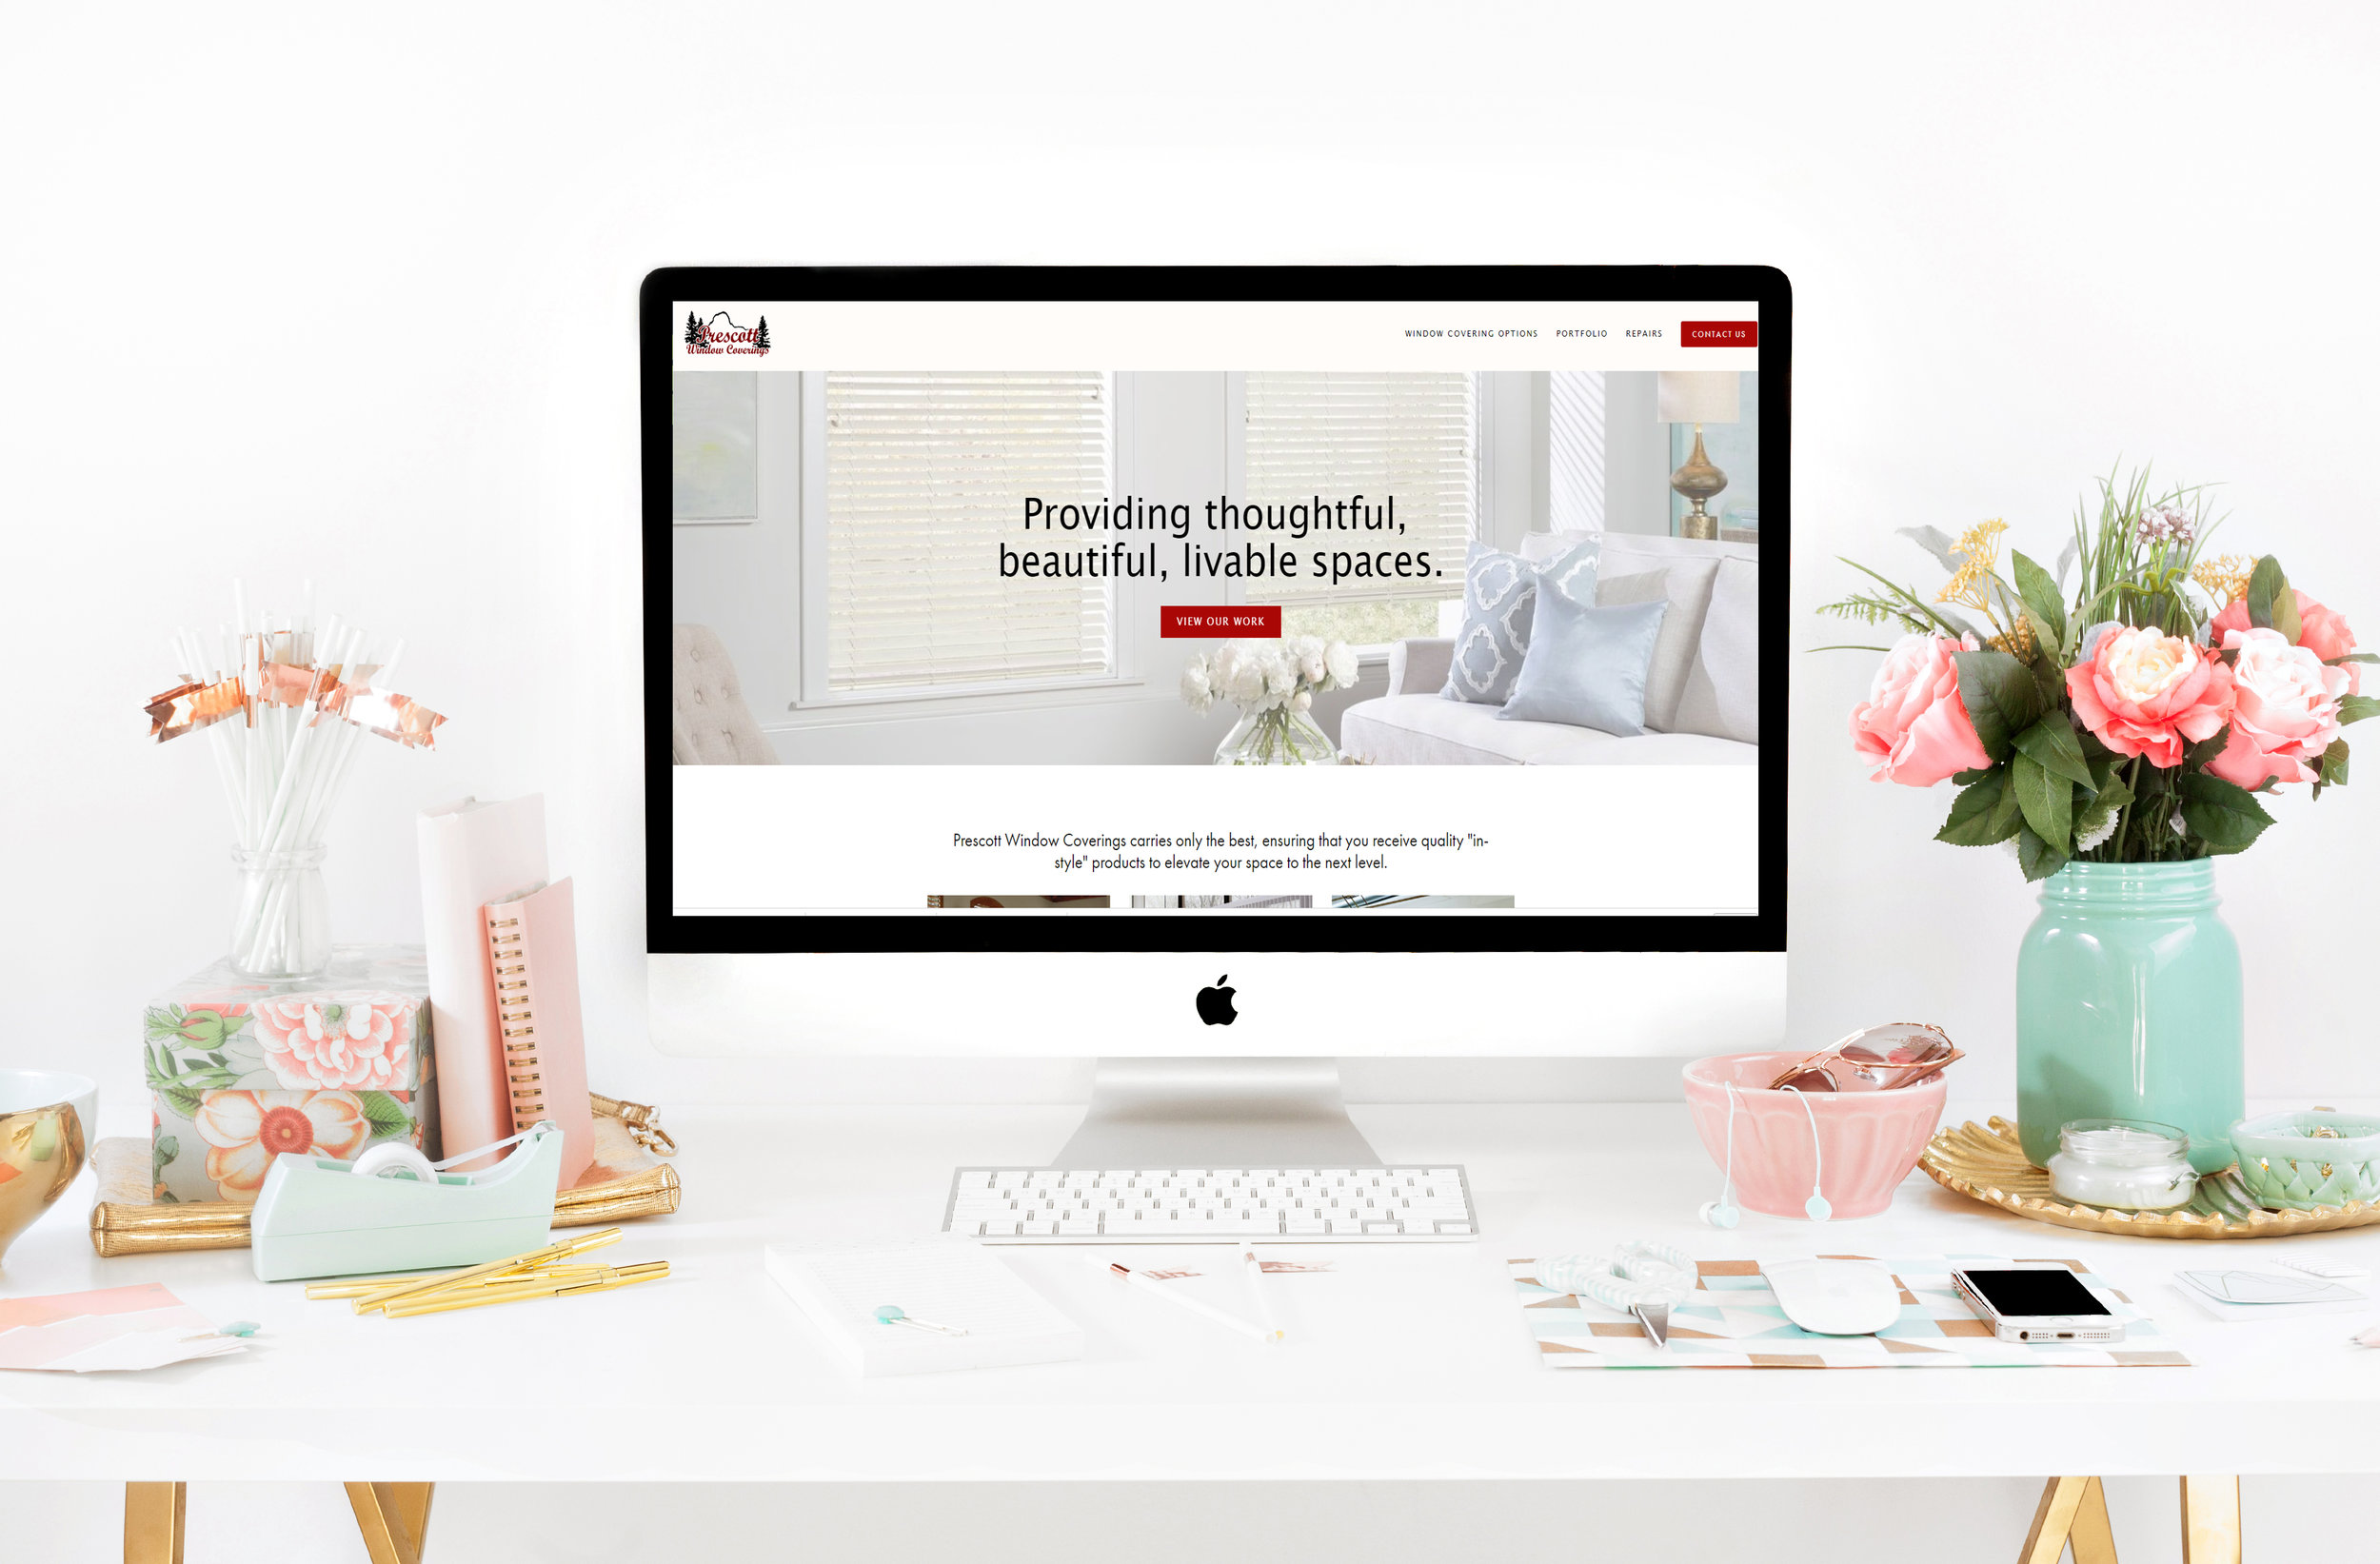 Prescott Window Coverings - Blinds, Shutters, Draperies, Valances, Window Coverings & Repairs, Prescott Window Coverings is your one stop shop for everything windows. Click Here to View the Prescott Window Coverings Website.